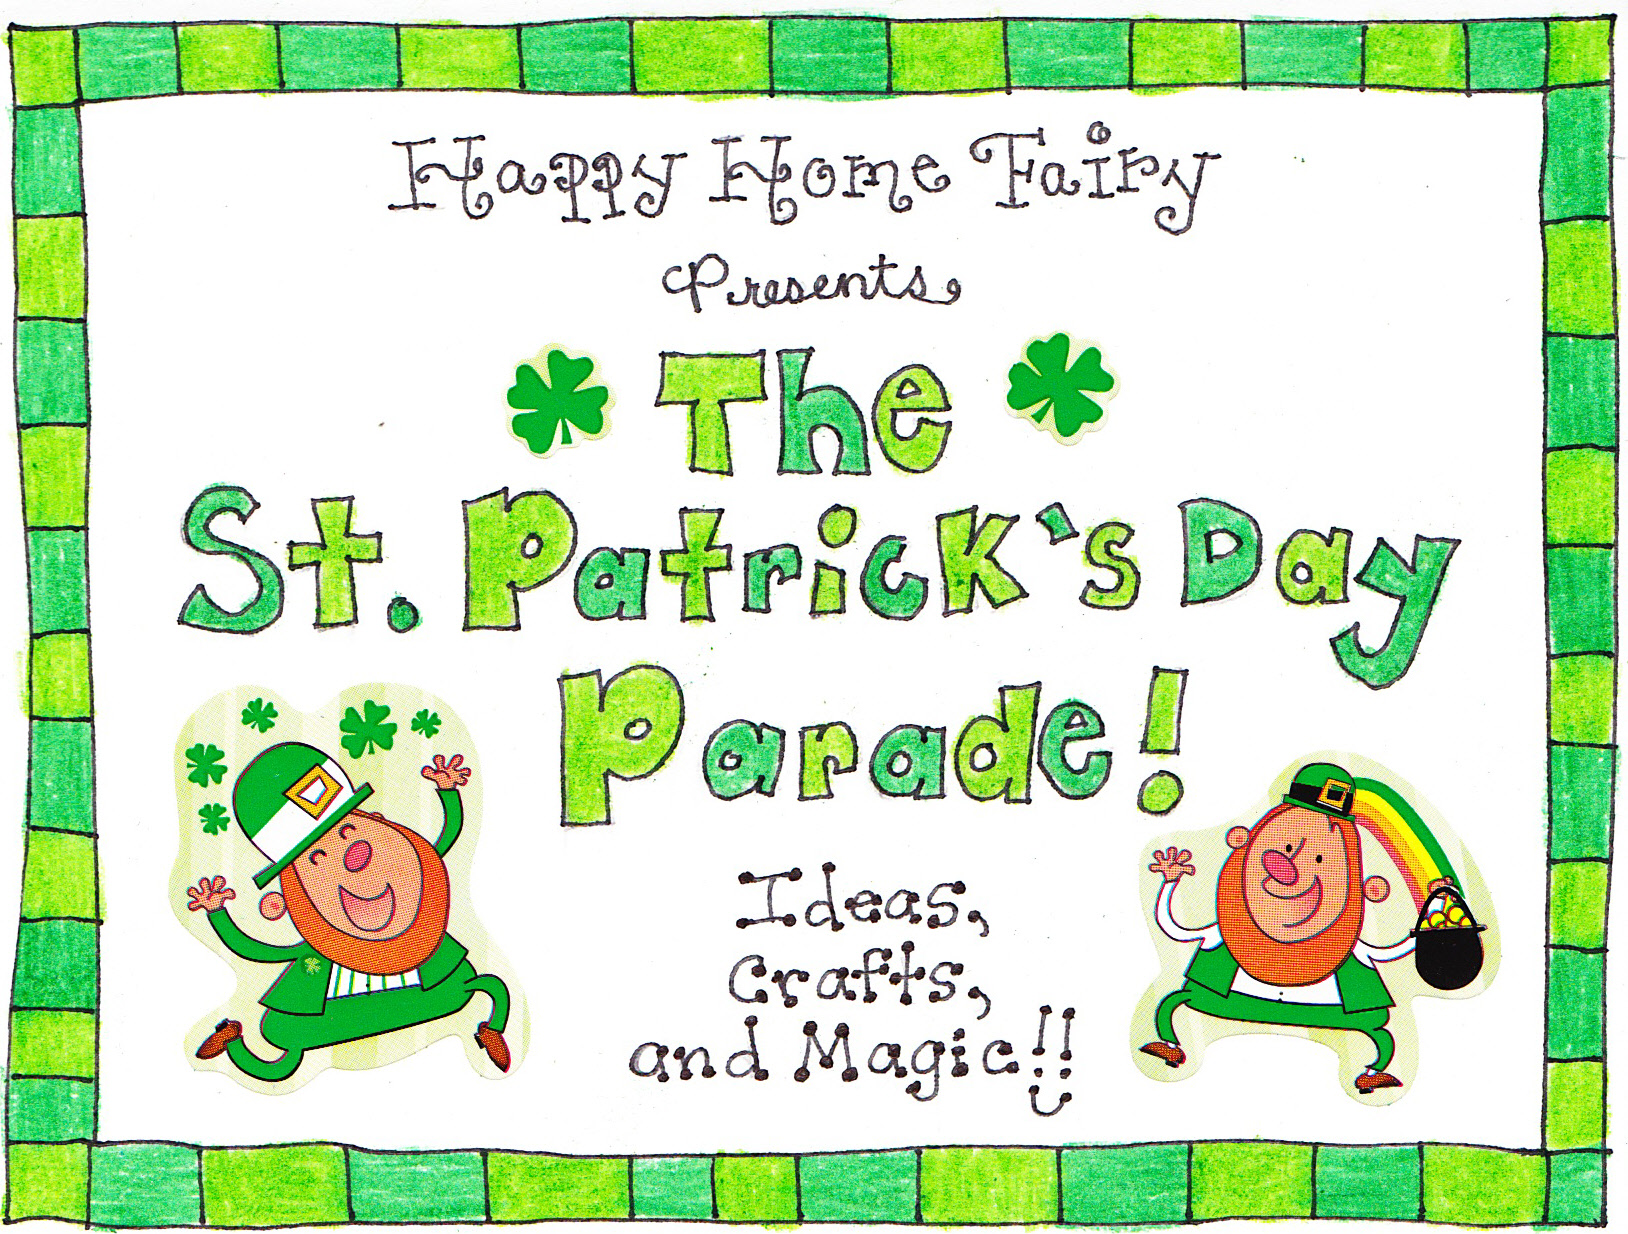 image regarding St Patrick's Day Cards Free Printable identify St. Patricks Working day Interaction Playing cards - Free of charge Printable